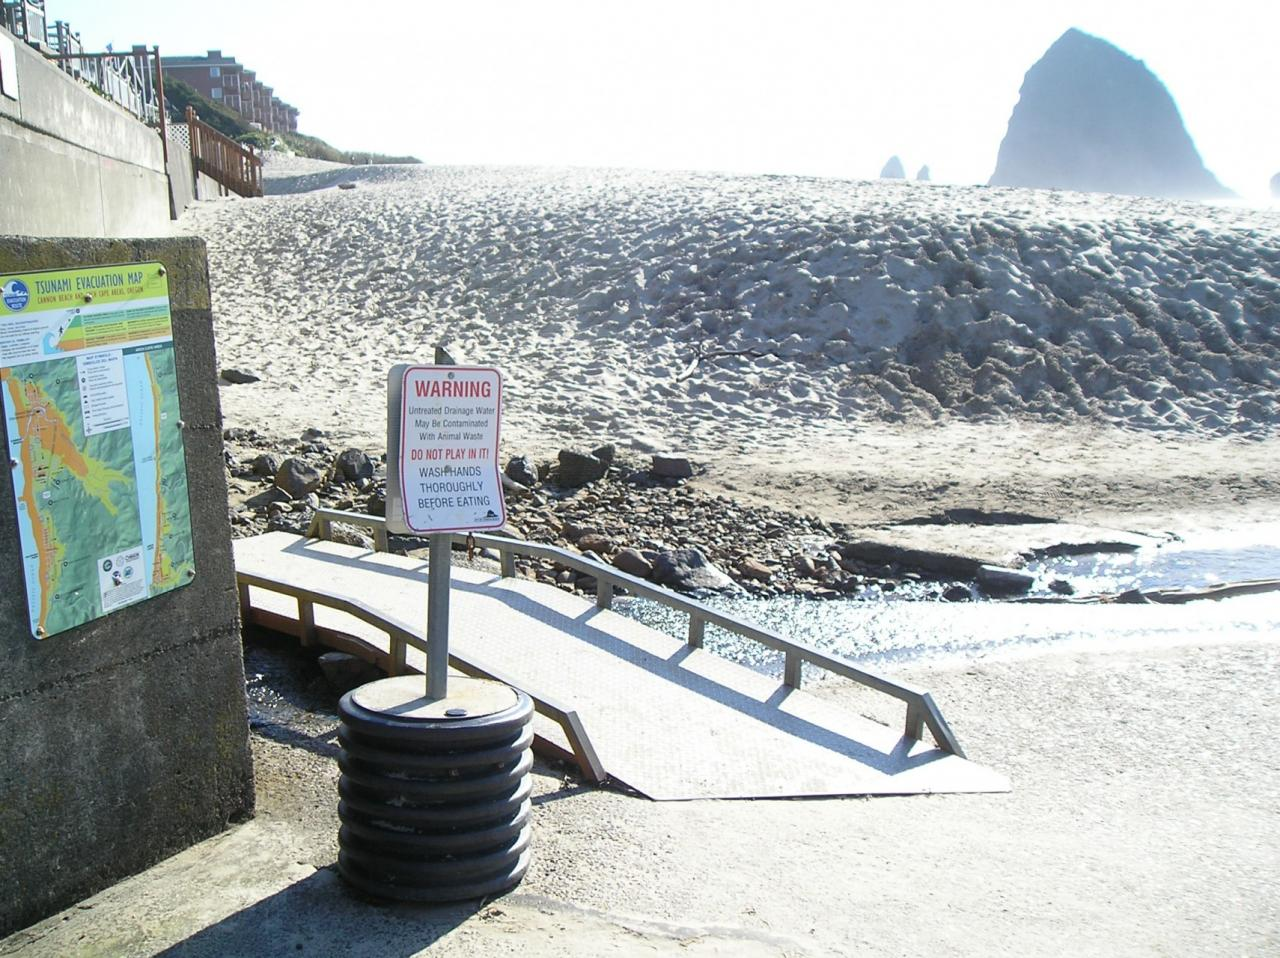 this is still a favorite play area, despite the signage.its only visible when accessing or leaving the beach at Gower